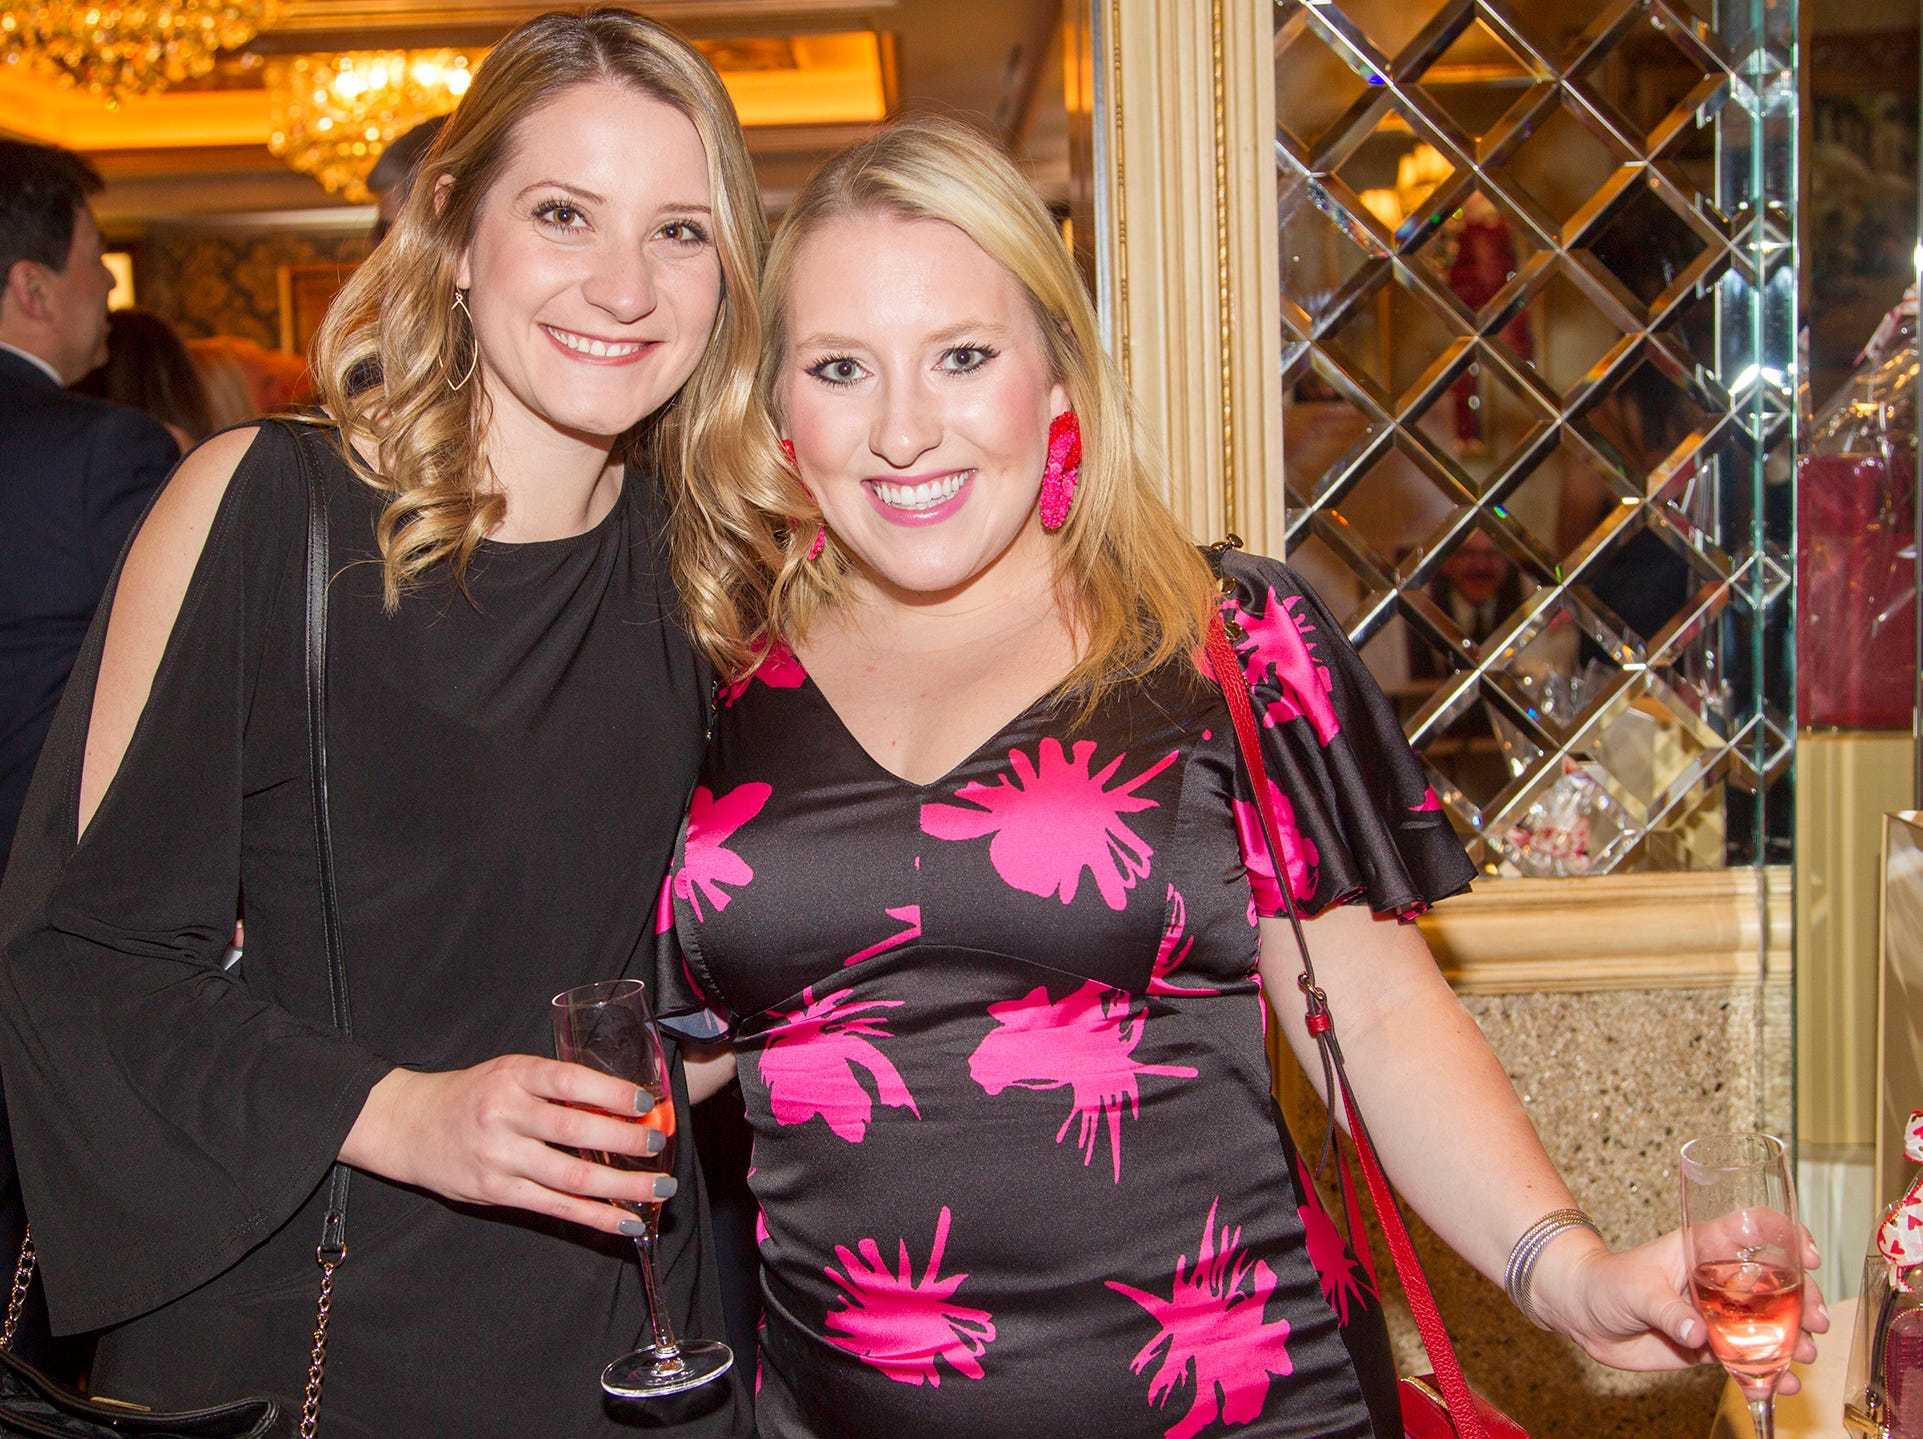 Natalie Vanee Vliet, Sally Phelps. Institute for Educational Achievement (IEA) held its annual Dinner Dance at Seasons in Washington Township. 02/02/2019